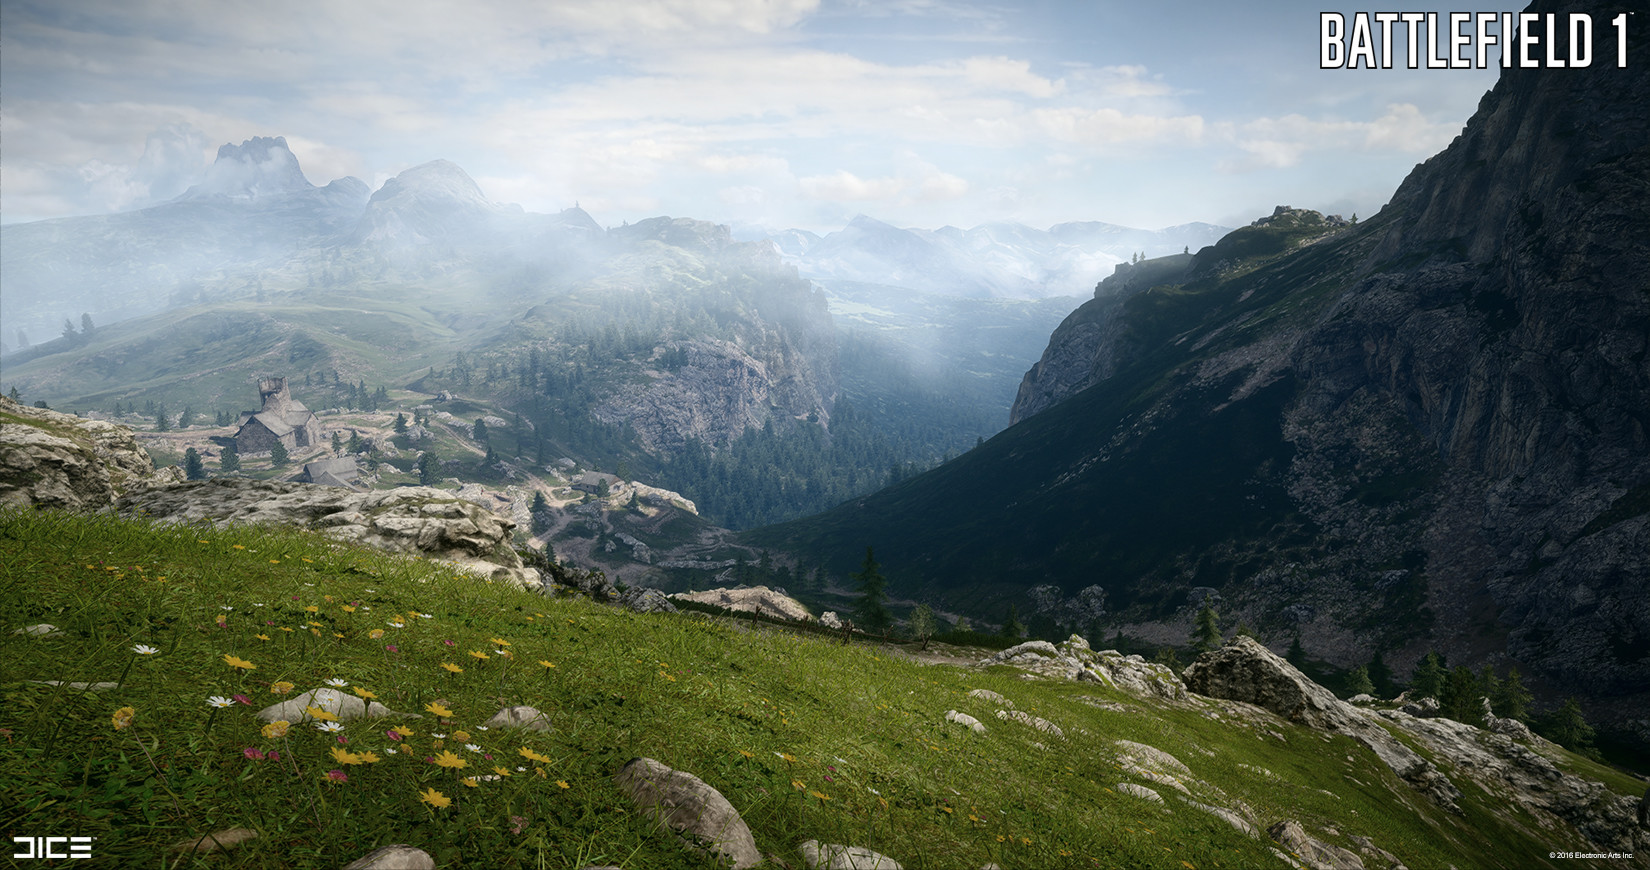 simon barle battlefield 1 monte grappa it didn't work out well well it did for me